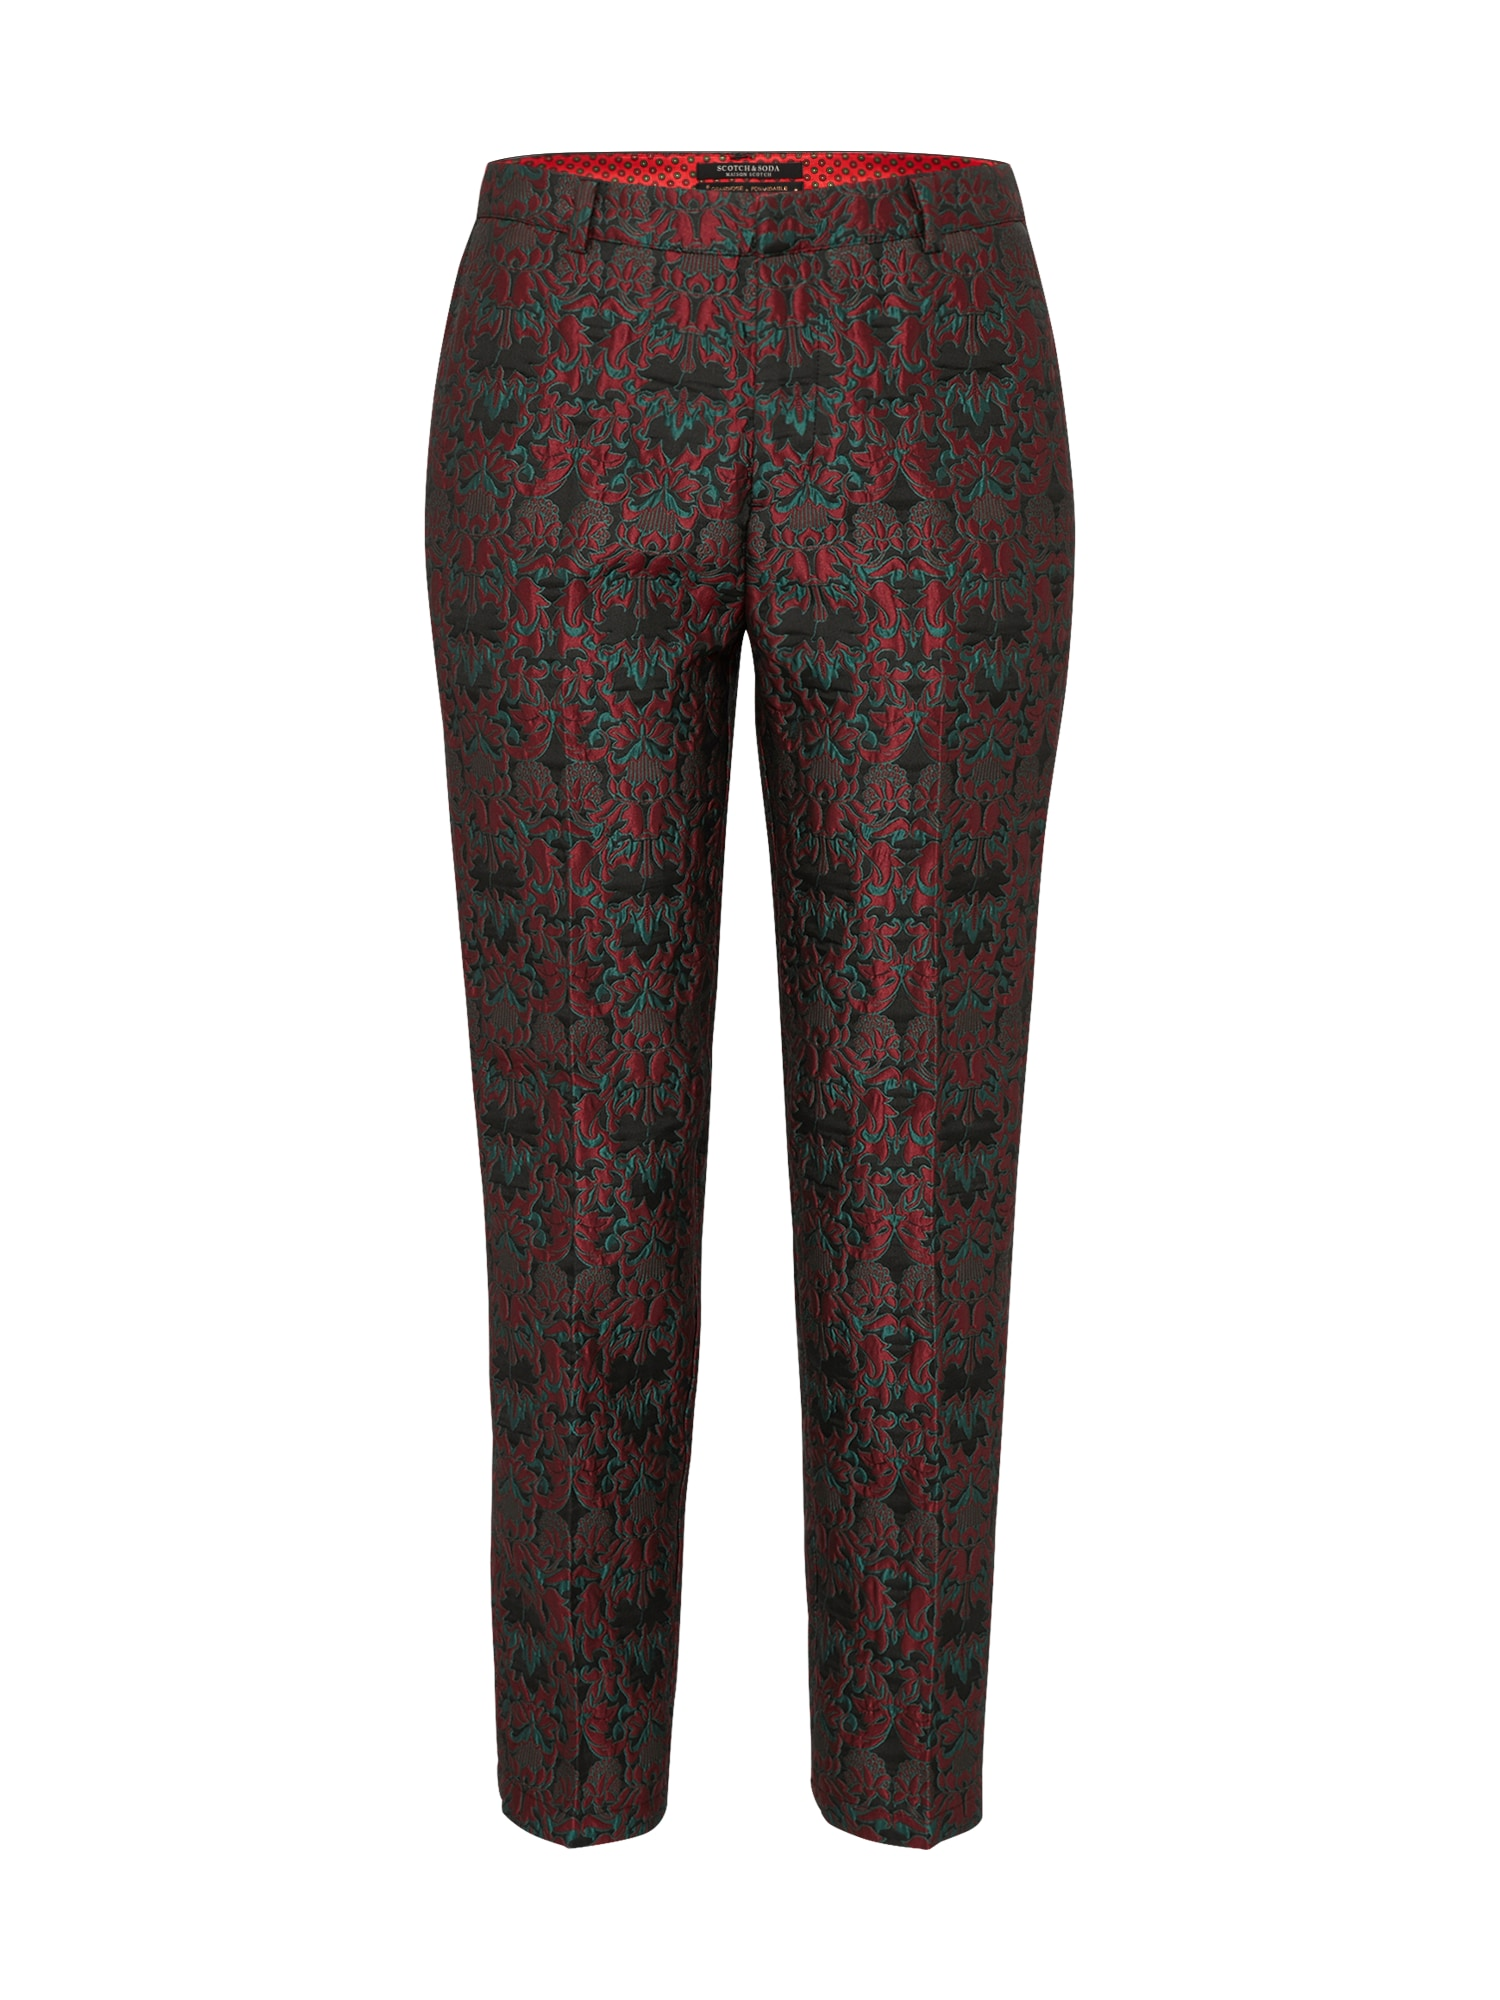 SCOTCH  and  SODA Dames Pantalon wijnrood zwart